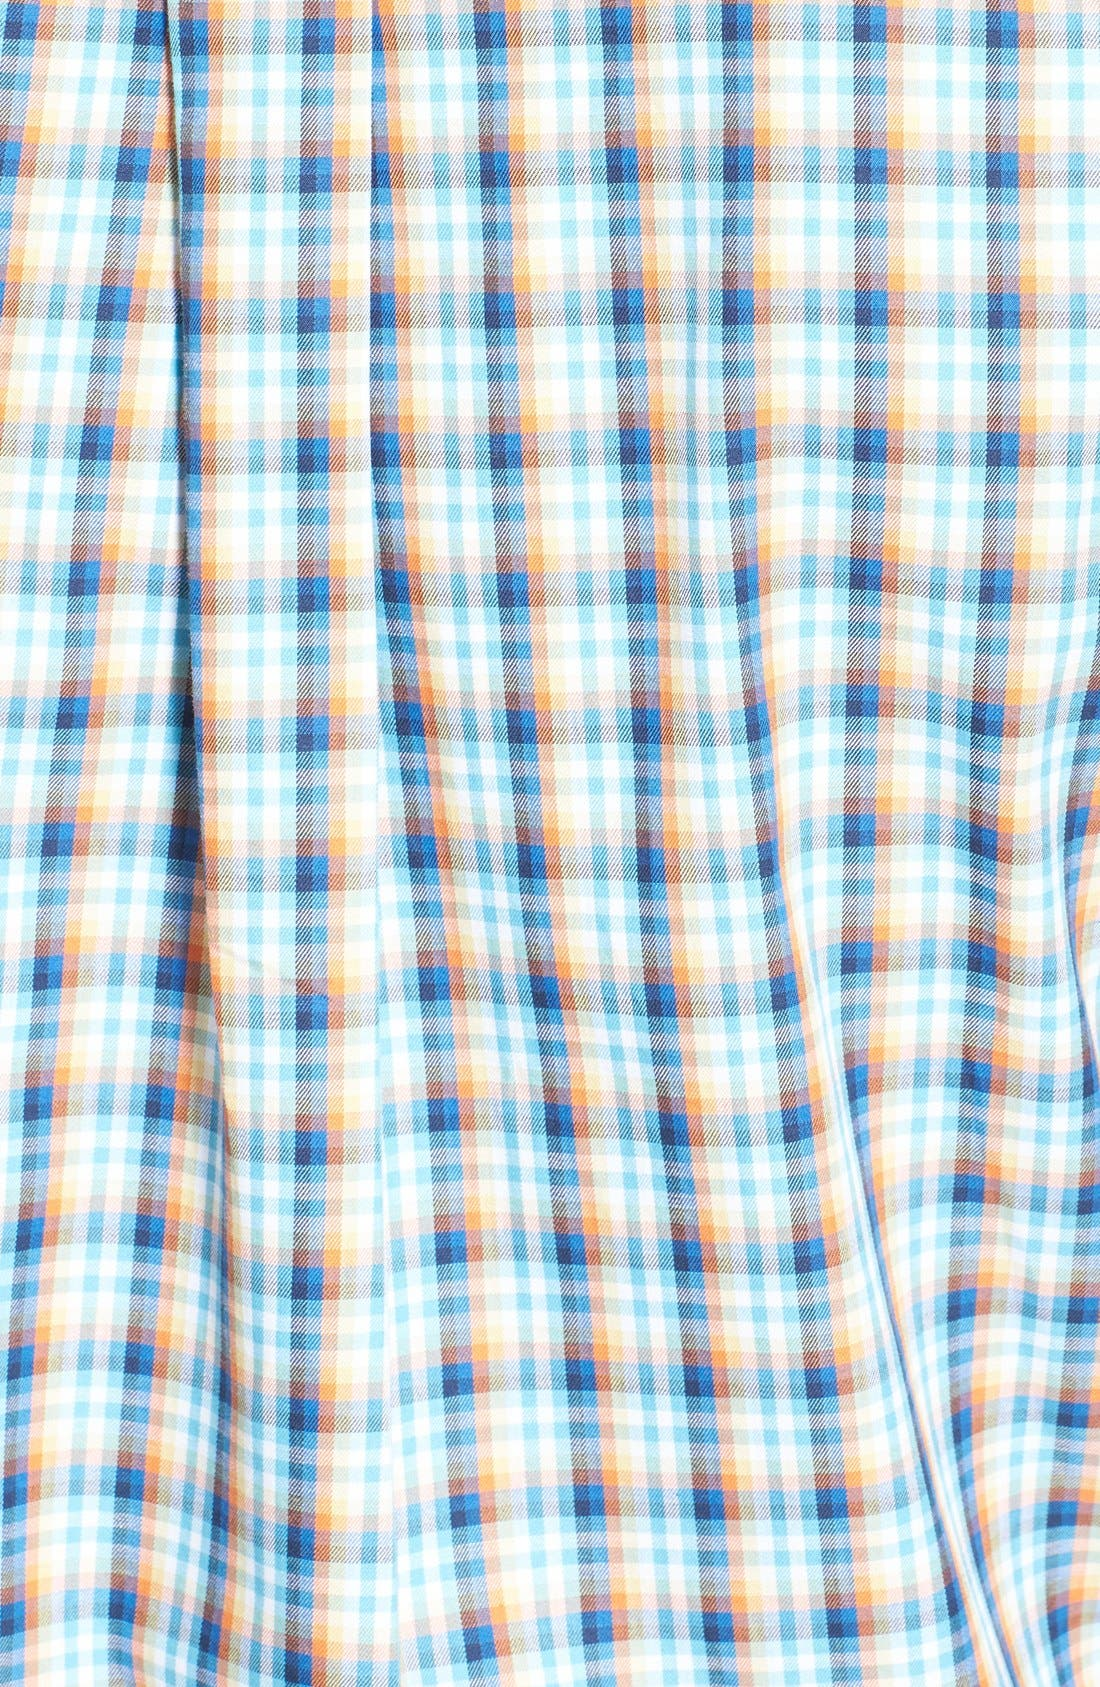 Alternate Image 3  - Cutter & Buck 'Morton Road' Classic Fit Short Sleeve Plaid Sport Shirt (Big & Tall)